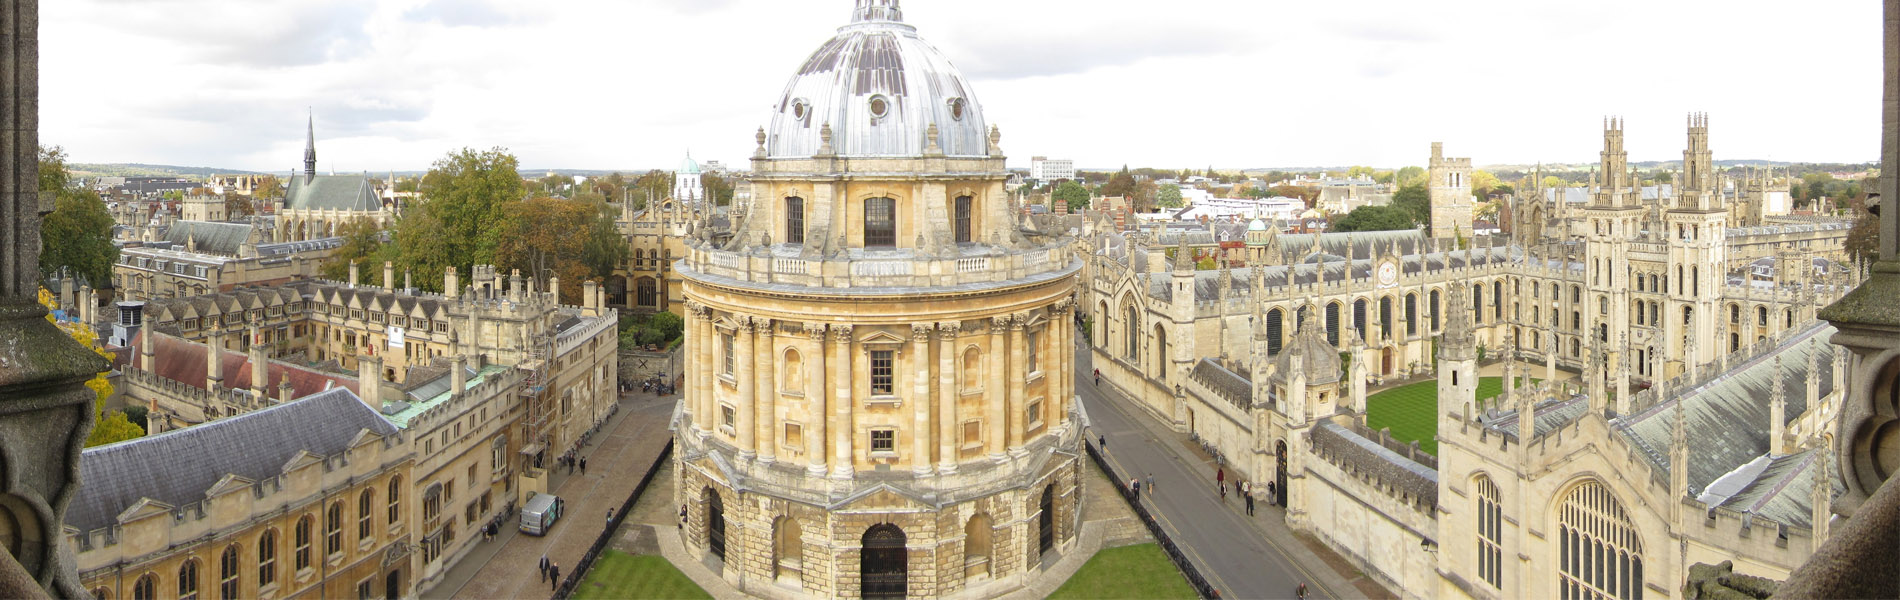 The University of Oxford appoints Simpson Associates to develop a Financial Planning solution